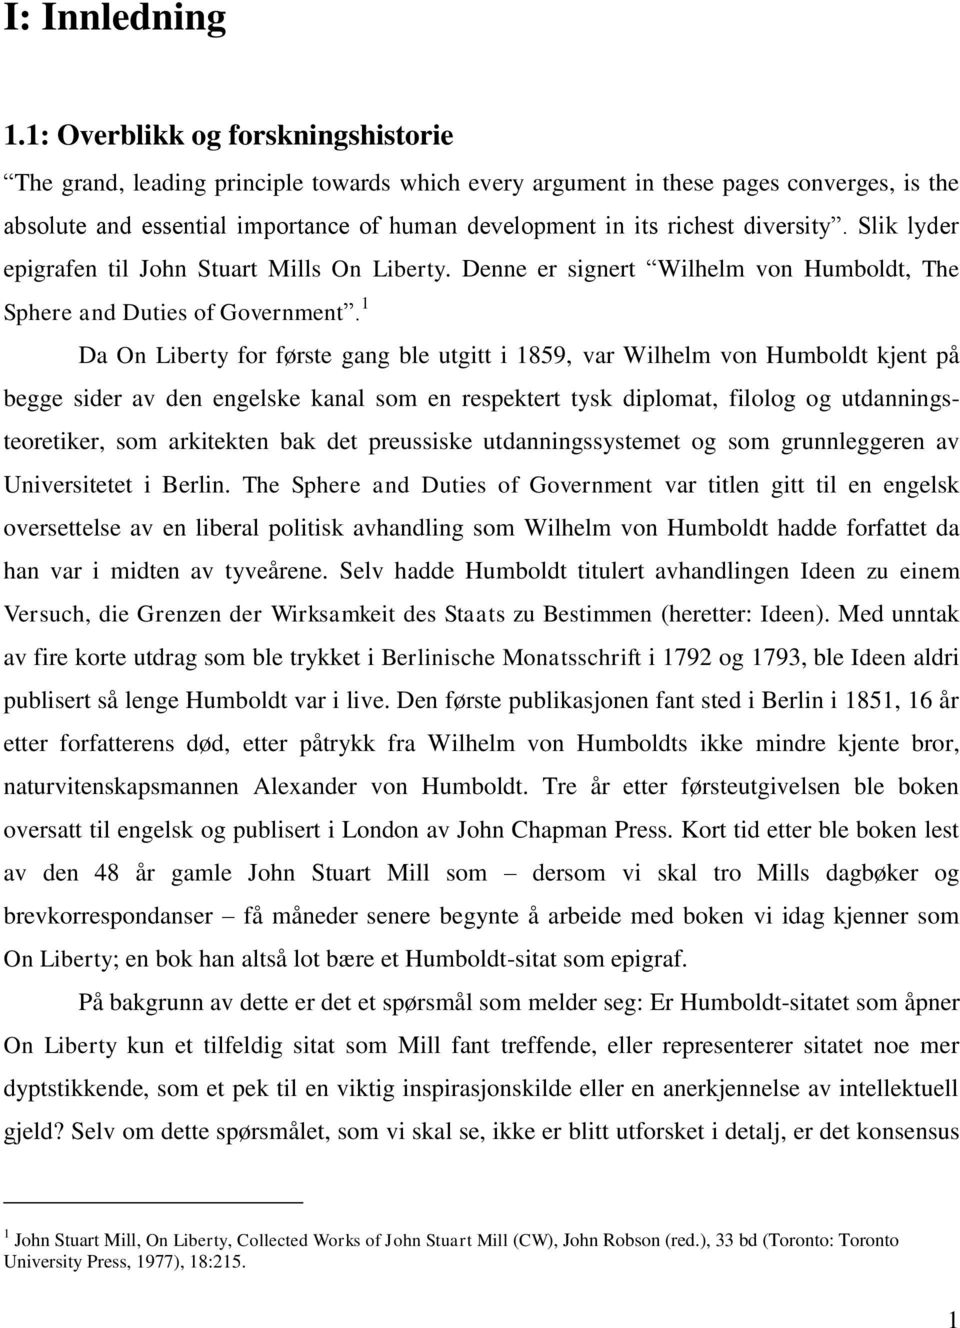 diversity. Slik lyder epigrafen til John Stuart Mills On Liberty. Denne er signert Wilhelm von Humboldt, The Sphere and Duties of Government.